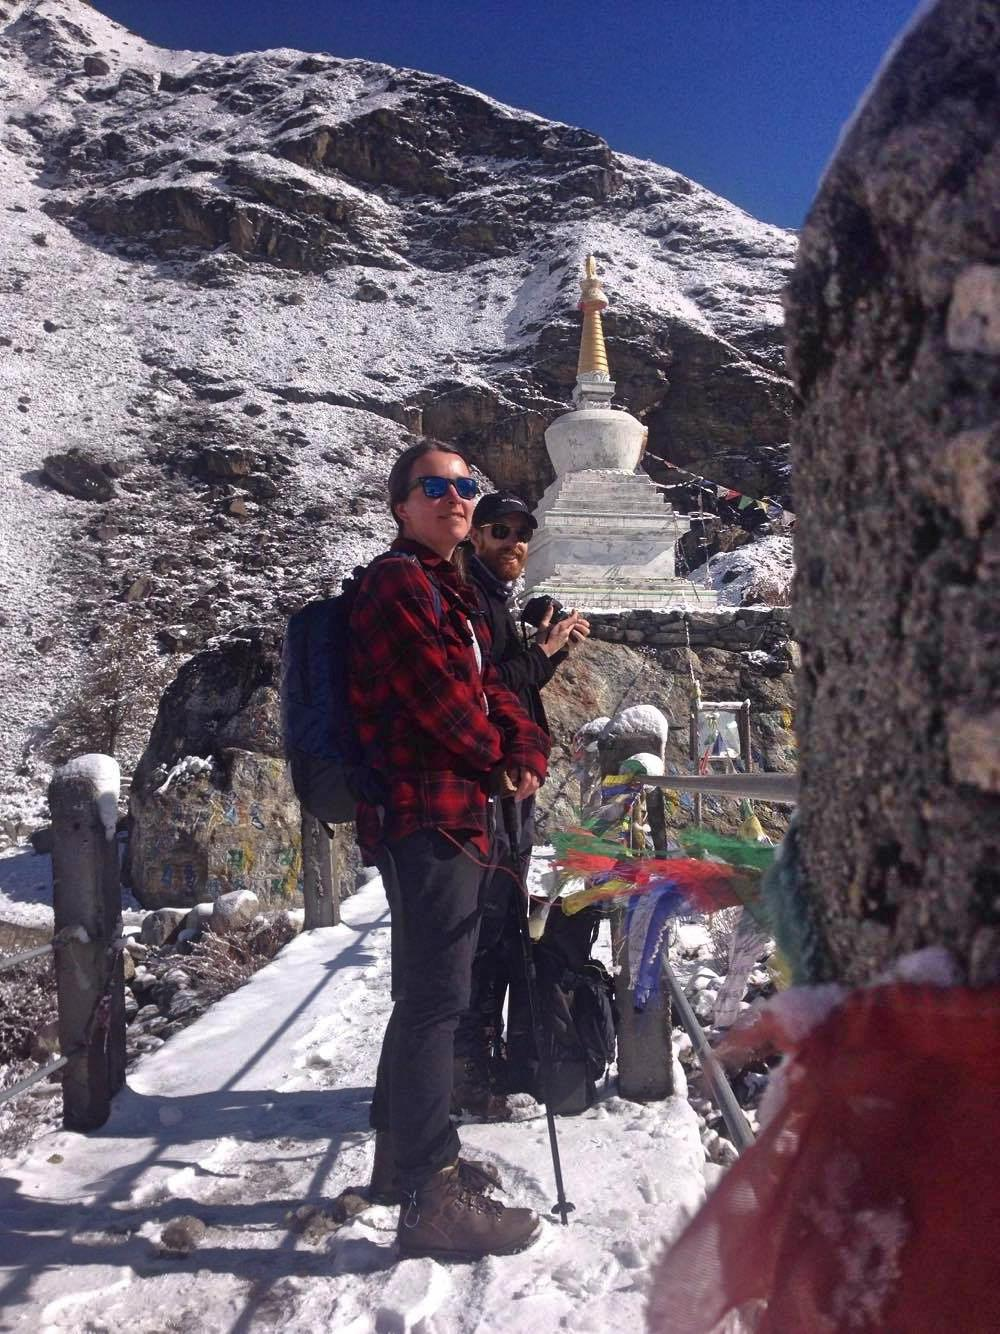 One of our client having a break at the bottom of a mountain - Langtang Valley Trek